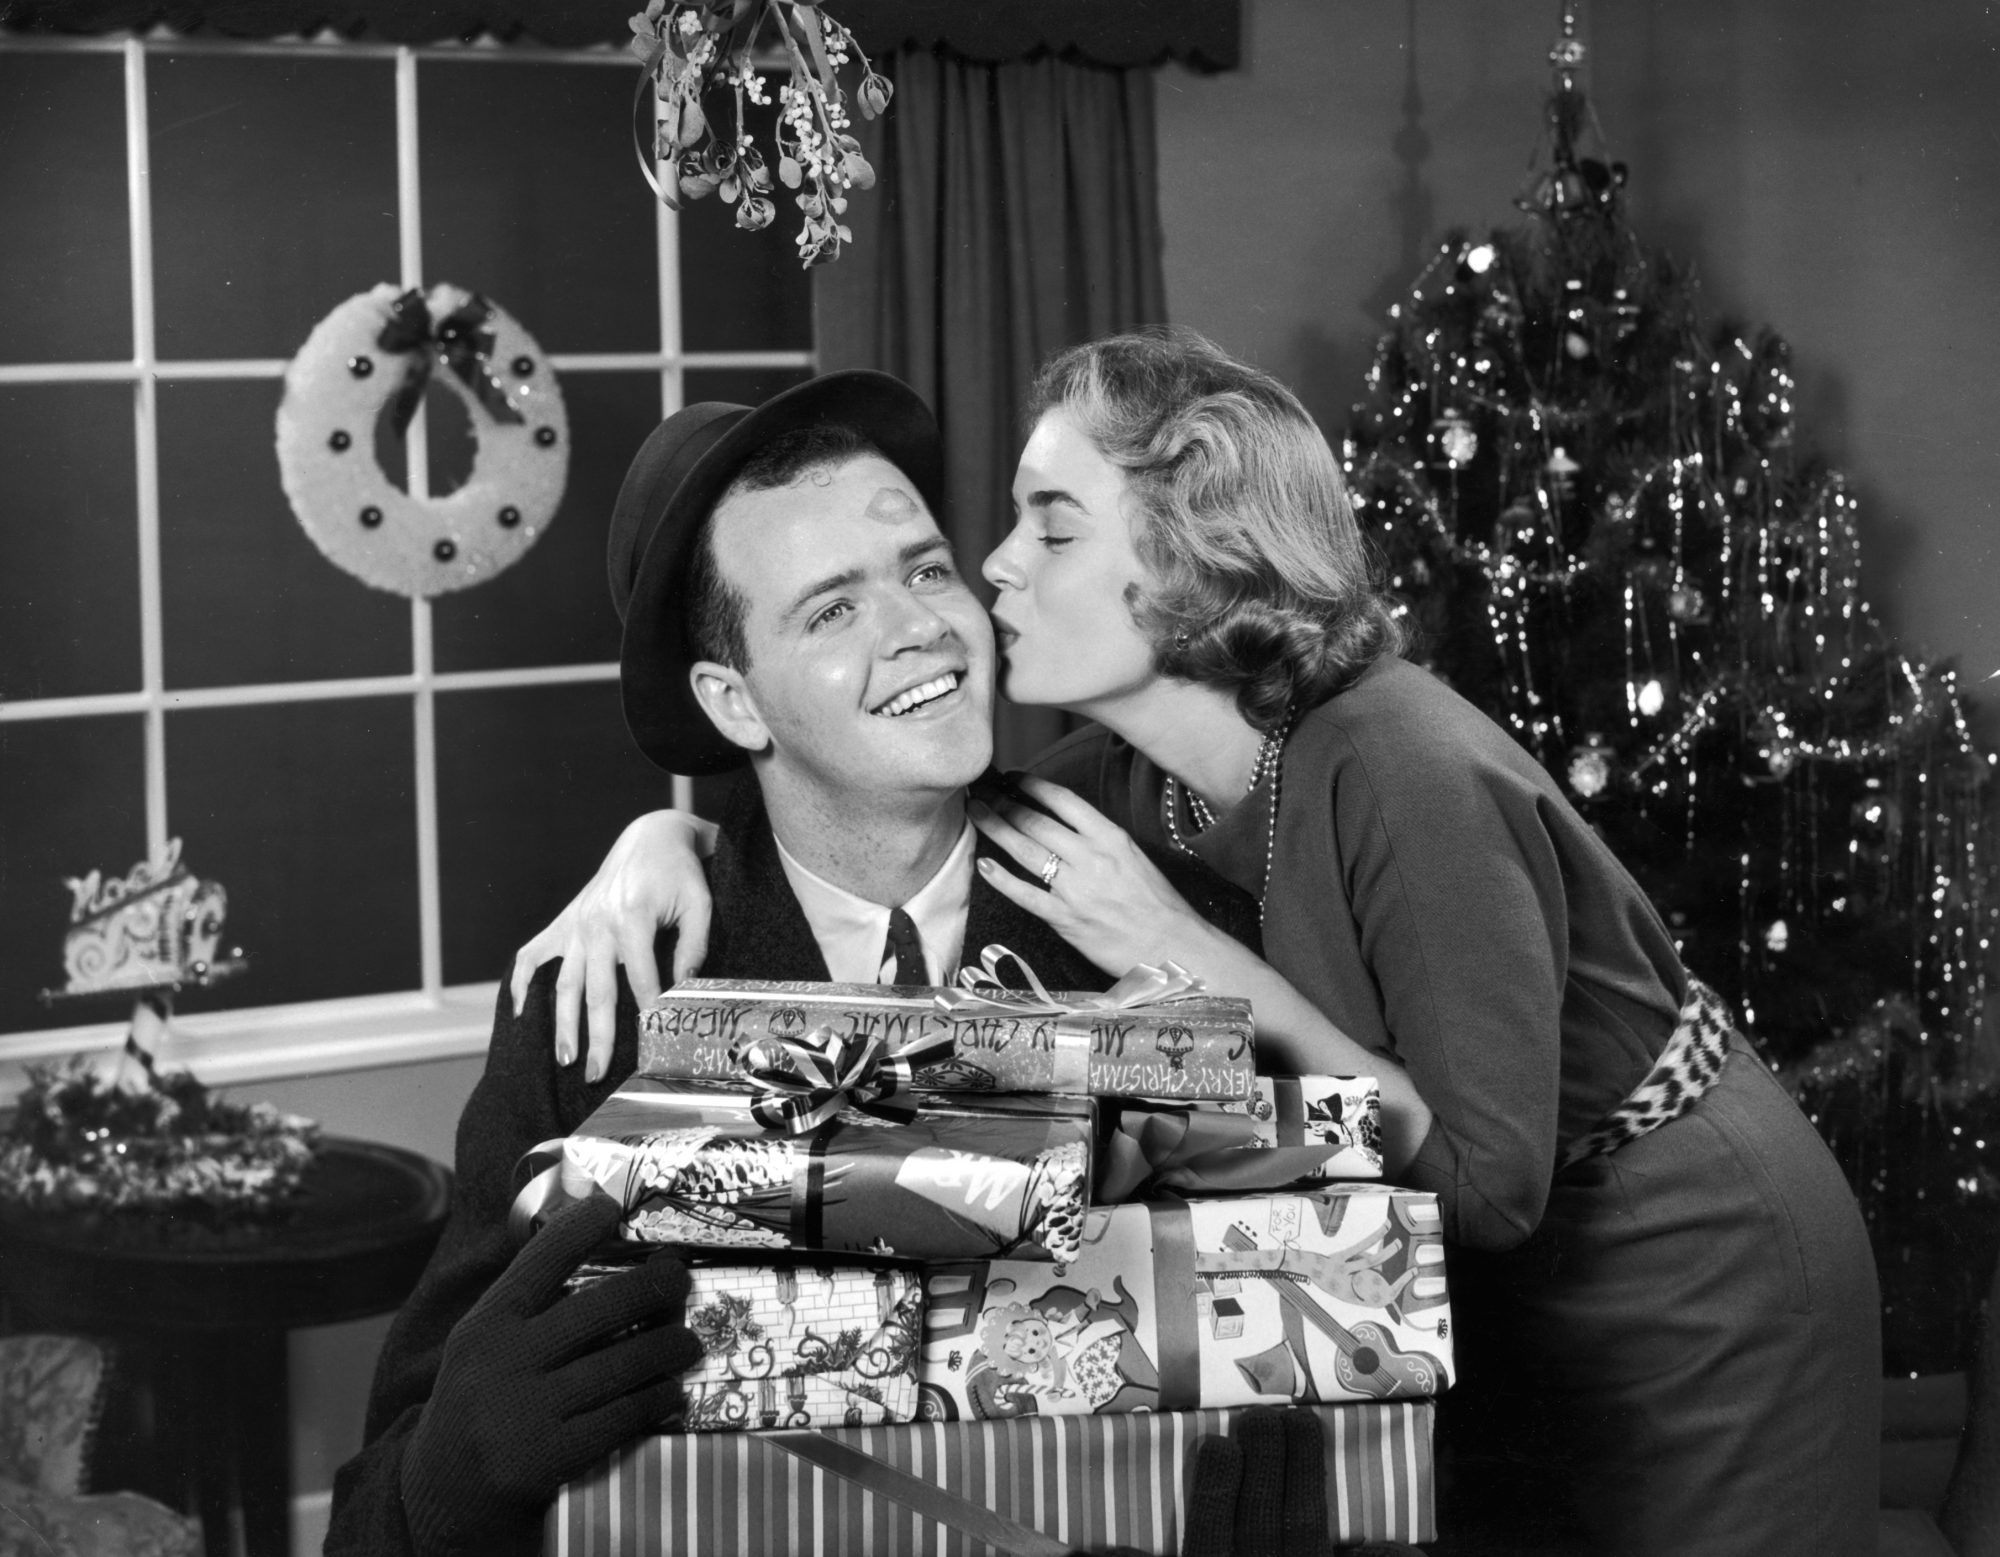 Woman Kissing Man Under Mistletoe